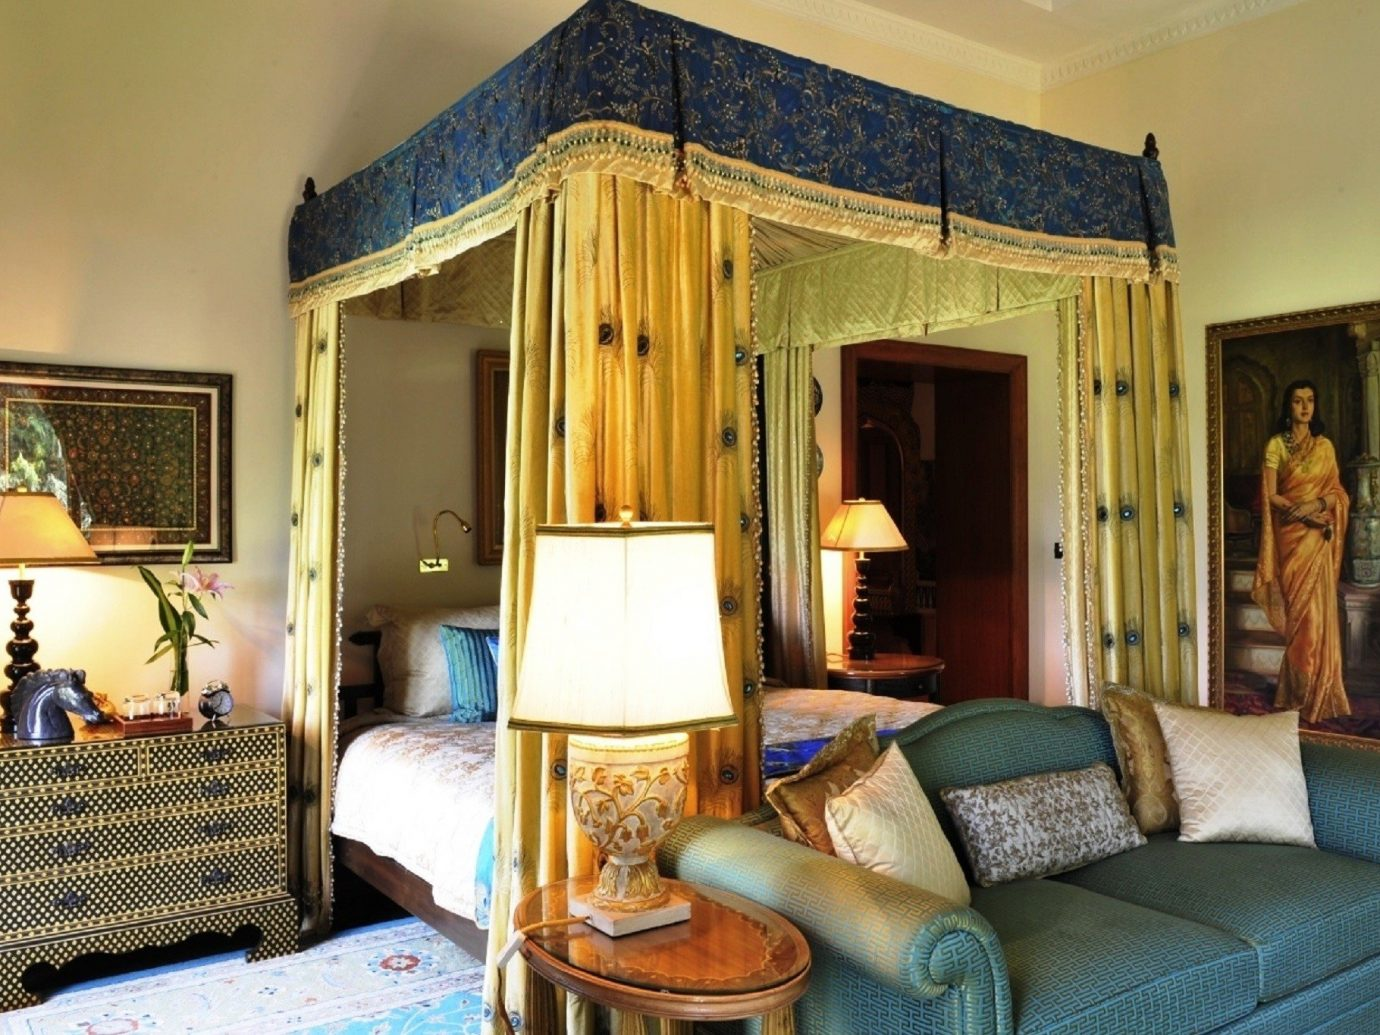 Hotels Luxury Travel Living indoor room wall sofa Bedroom interior design Suite estate home real estate furniture window treatment ceiling bed living room hotel window four poster house decorated area